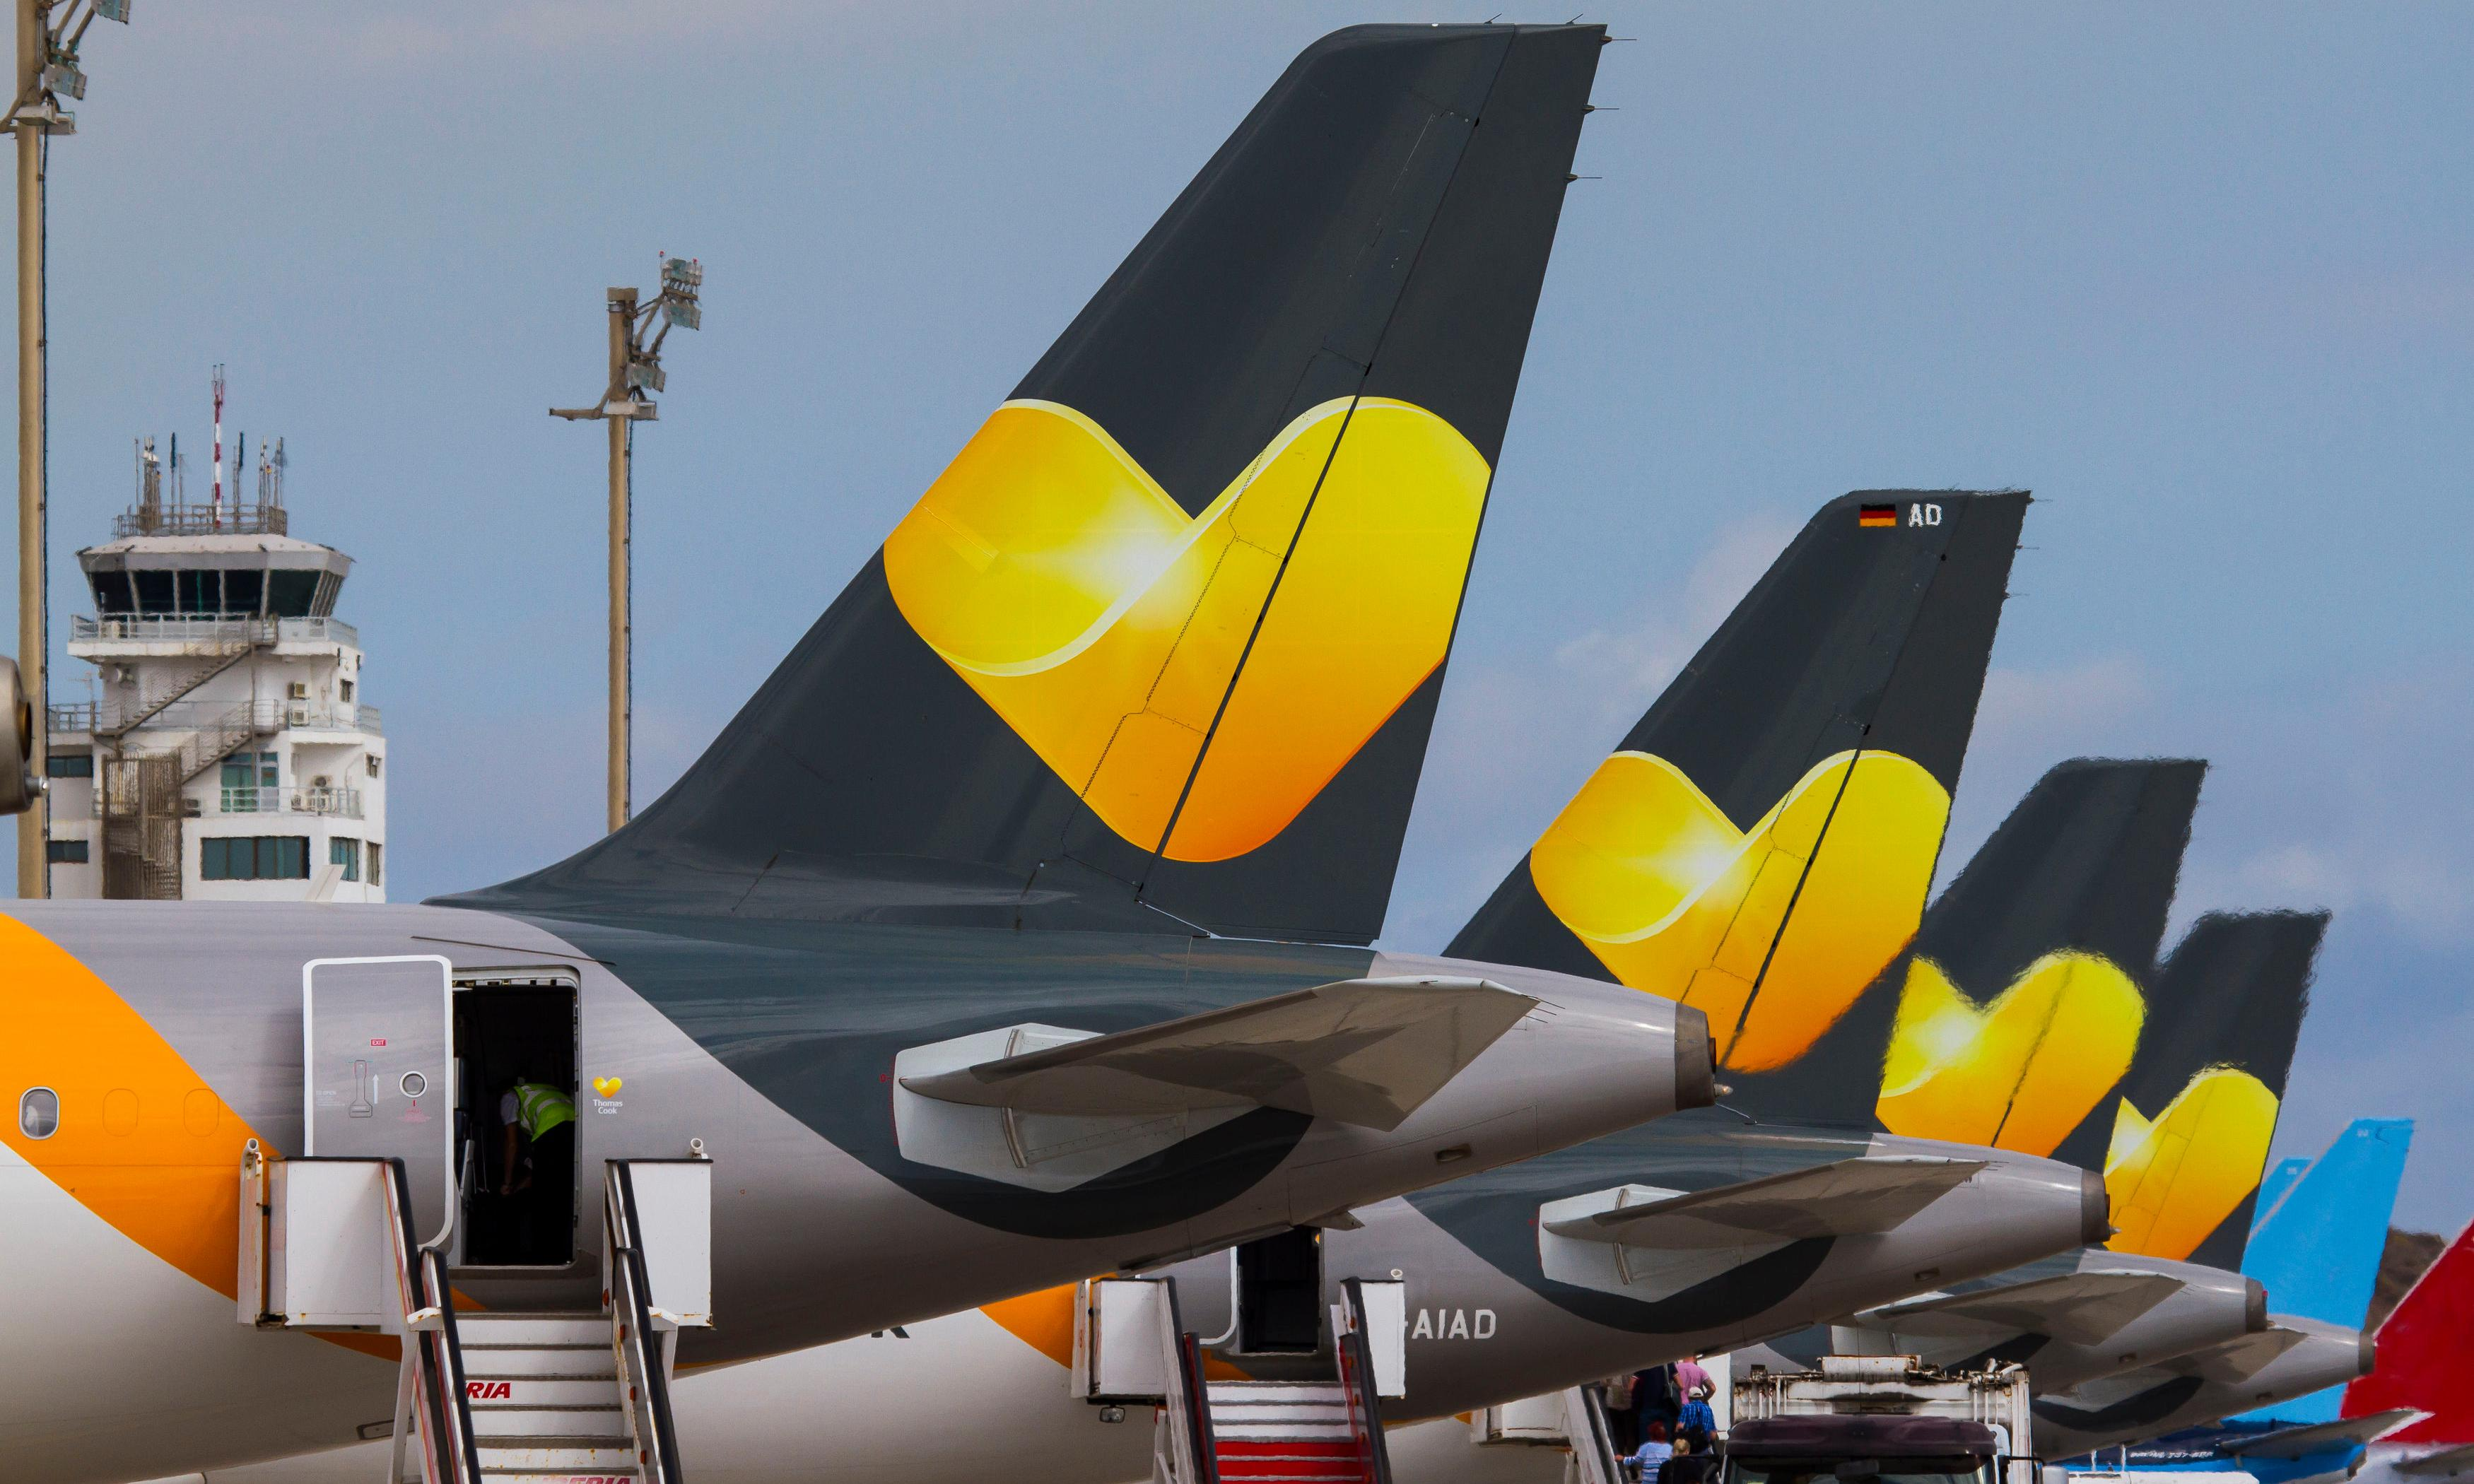 Period of debt-fuelled expansion 'may have caused Thomas Cook collapse'